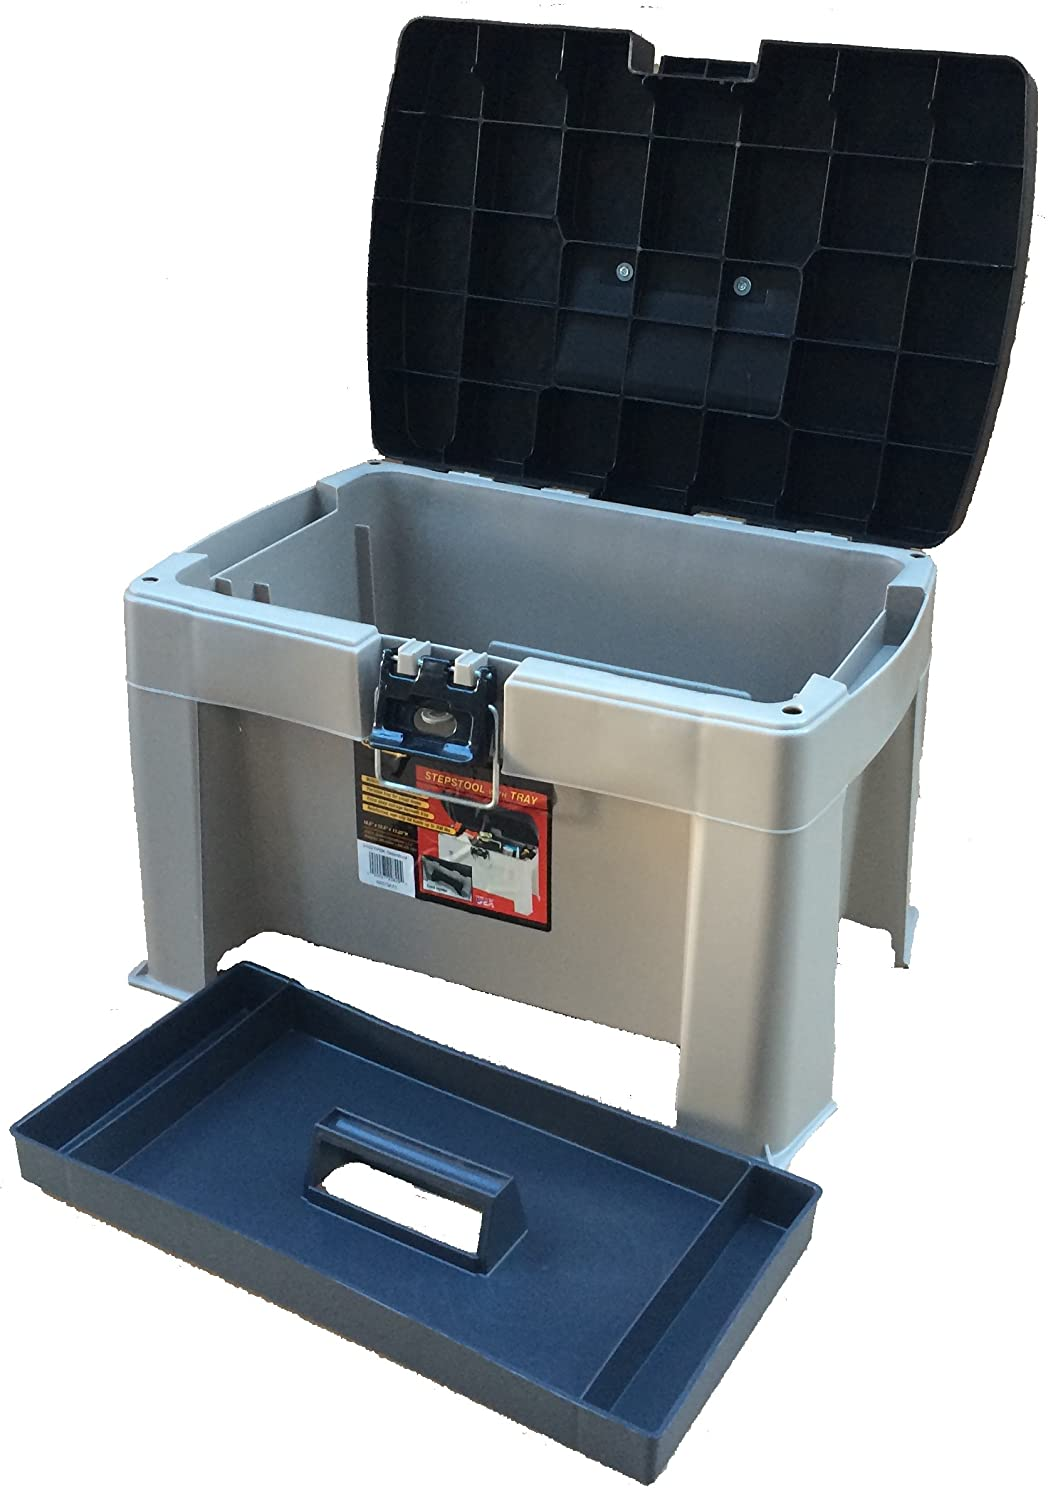 Plastic Step Stool Seat - Tack Tool Fishing Box - Horse Equestrian Mounting Block Amazon.co.uk Kitchen u0026 Home  sc 1 st  Amazon UK & Plastic Step Stool Seat - Tack Tool Fishing Box - Horse Equestrian ... islam-shia.org